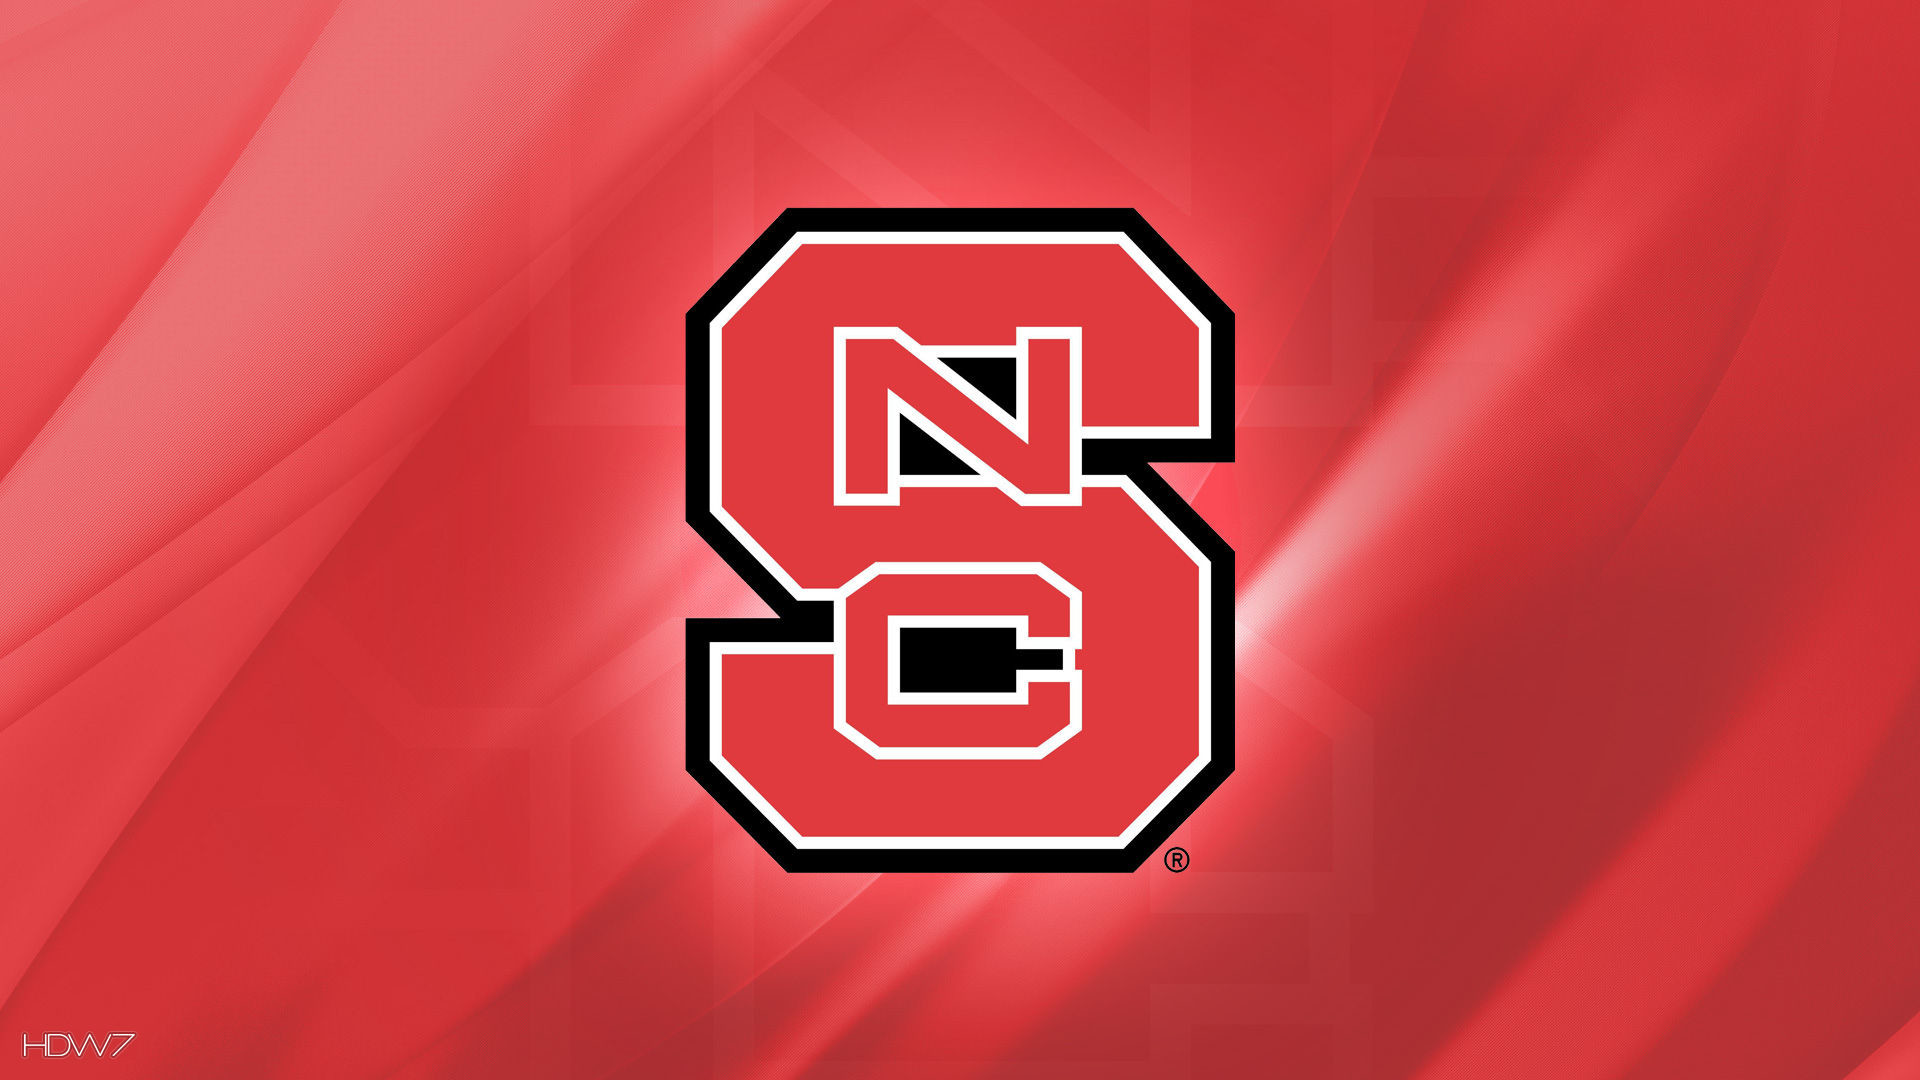 1920x1080 wallpaper name north carolina state university athletic jpg wallpaper .